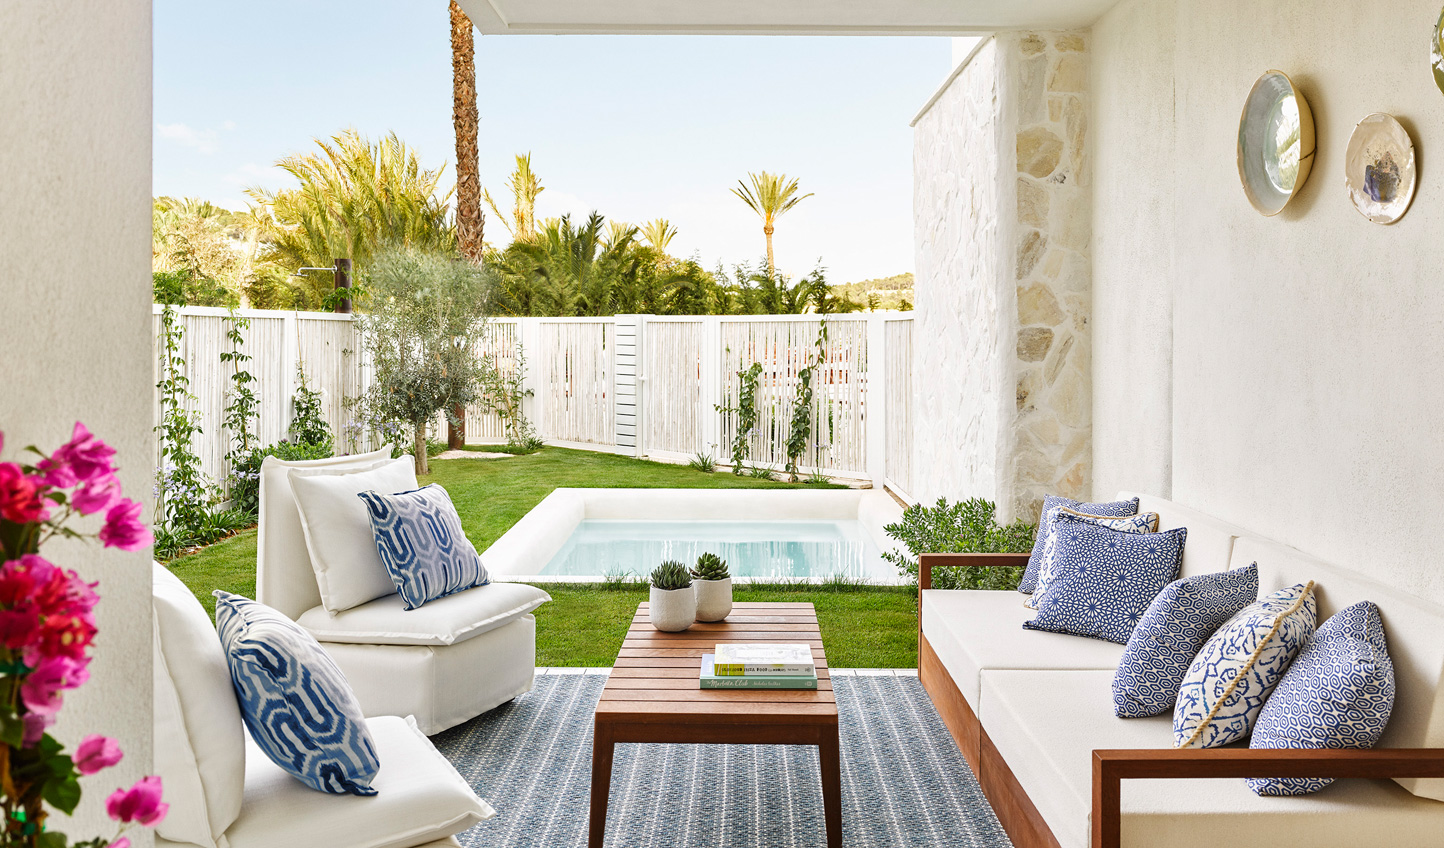 Step out into the serenity of a private garden